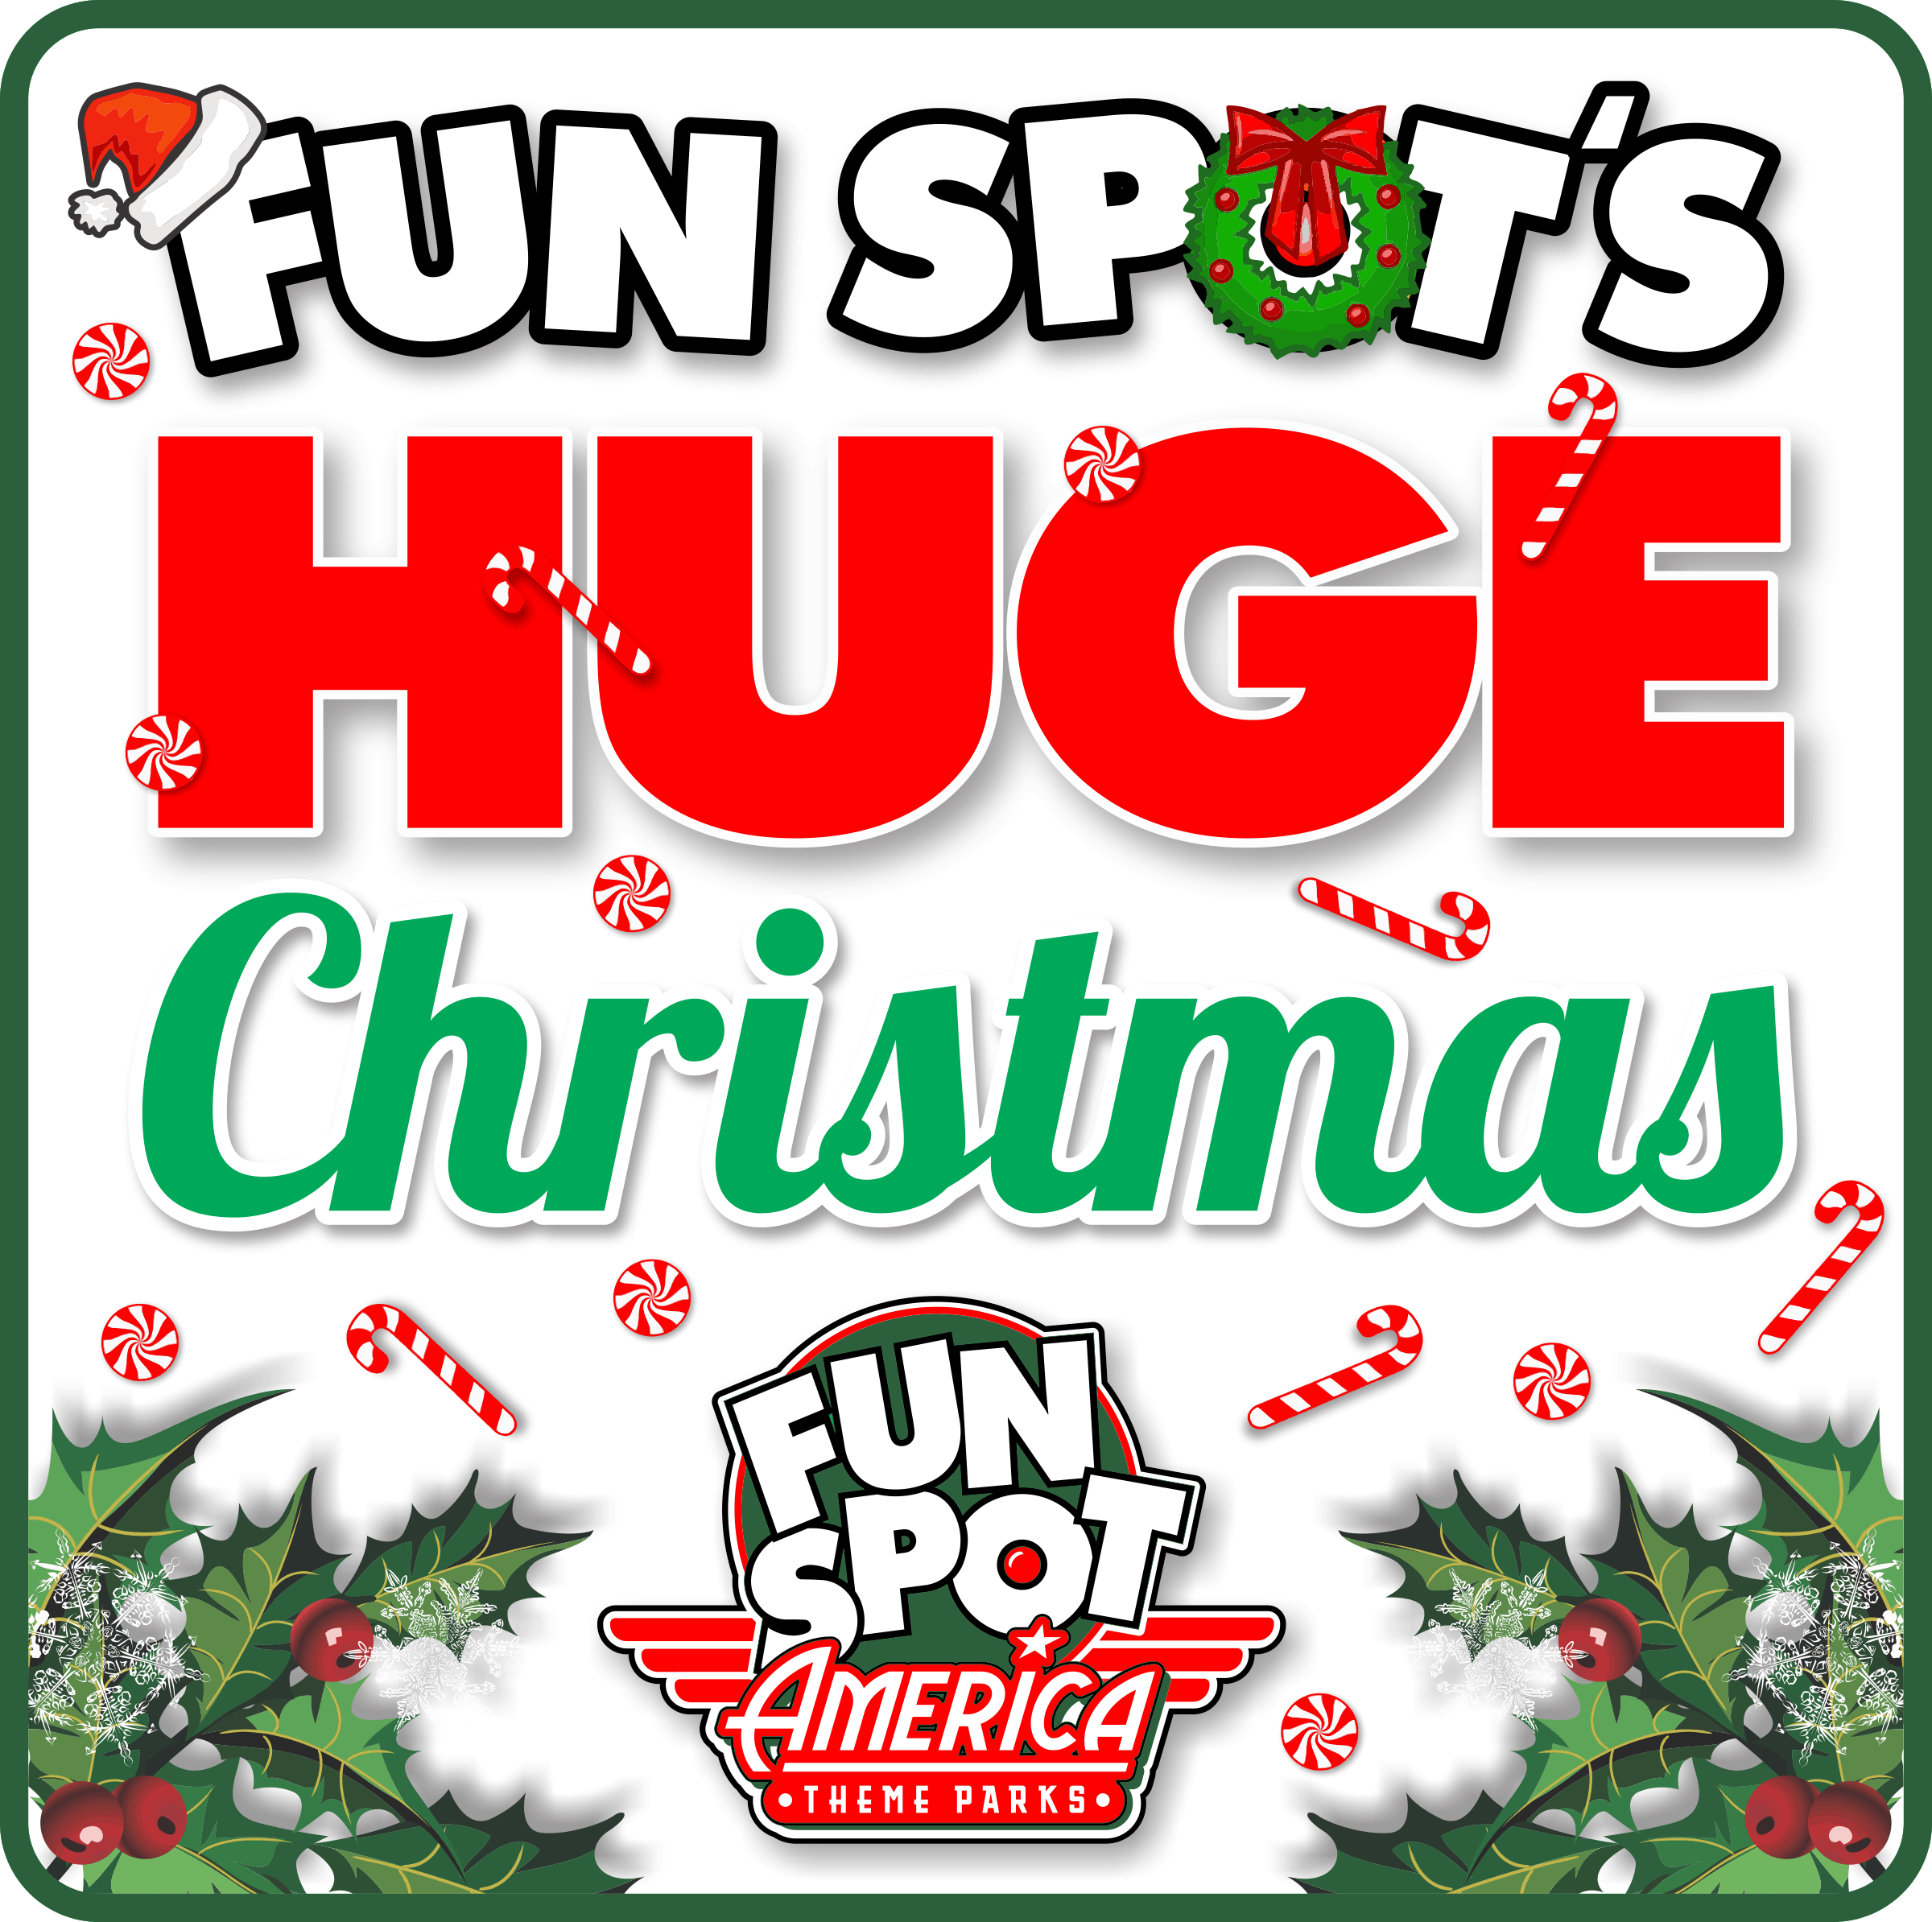 Fun Spot's HUGE Christmas Logo